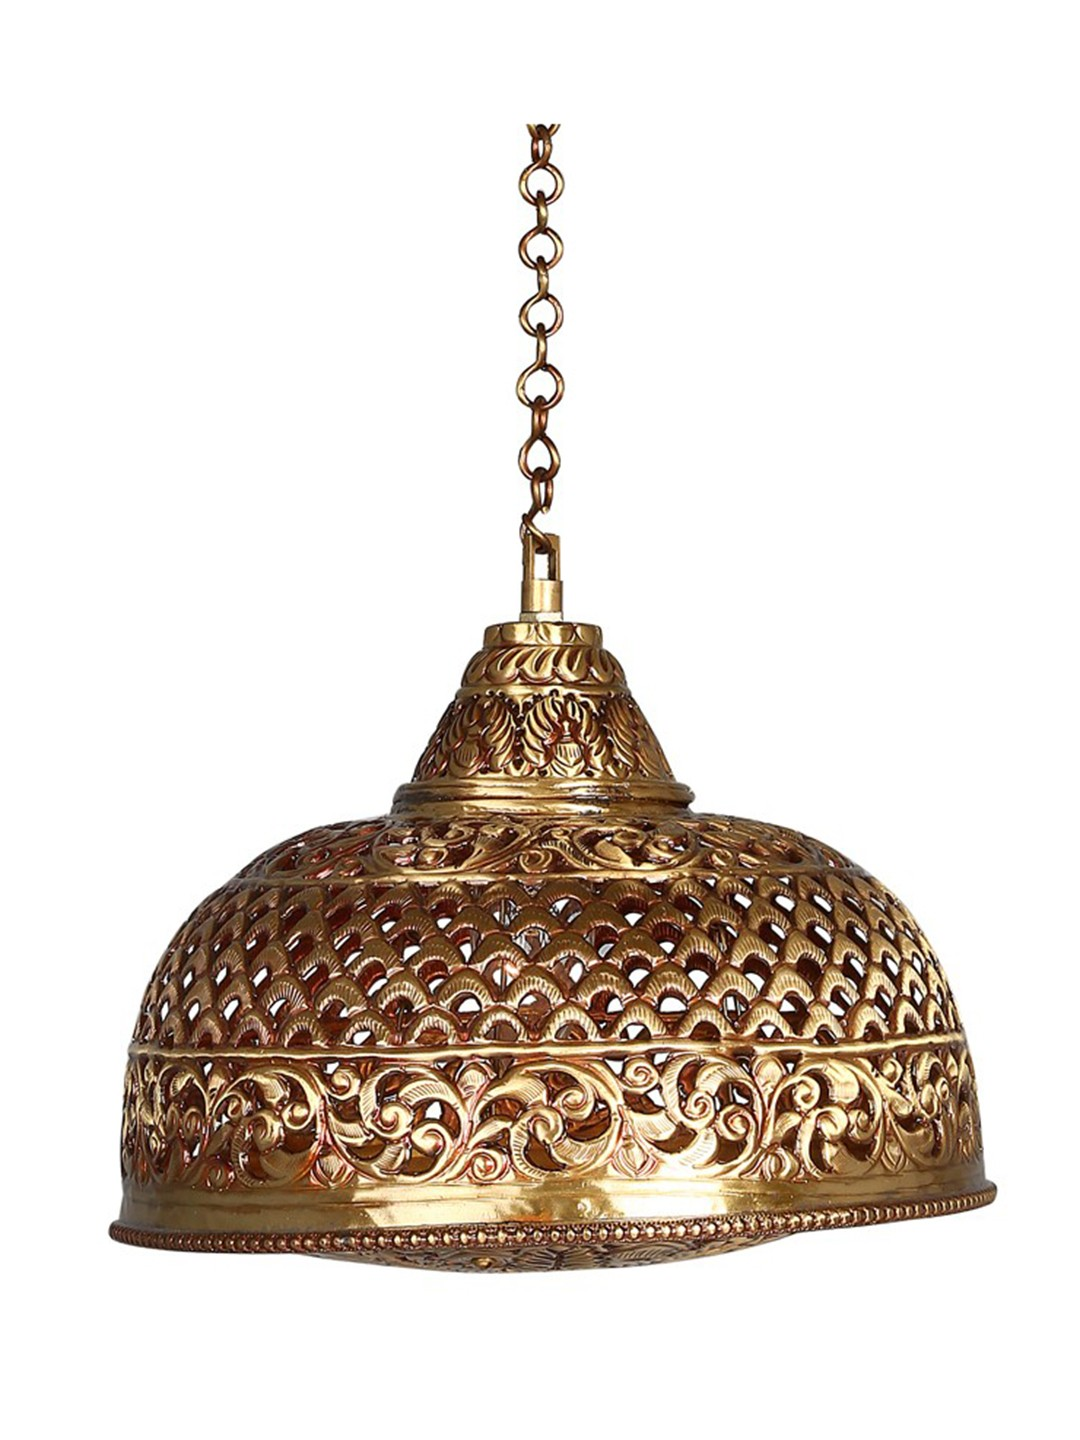 Hand Pierced Brass Dome Single light Small Hanging